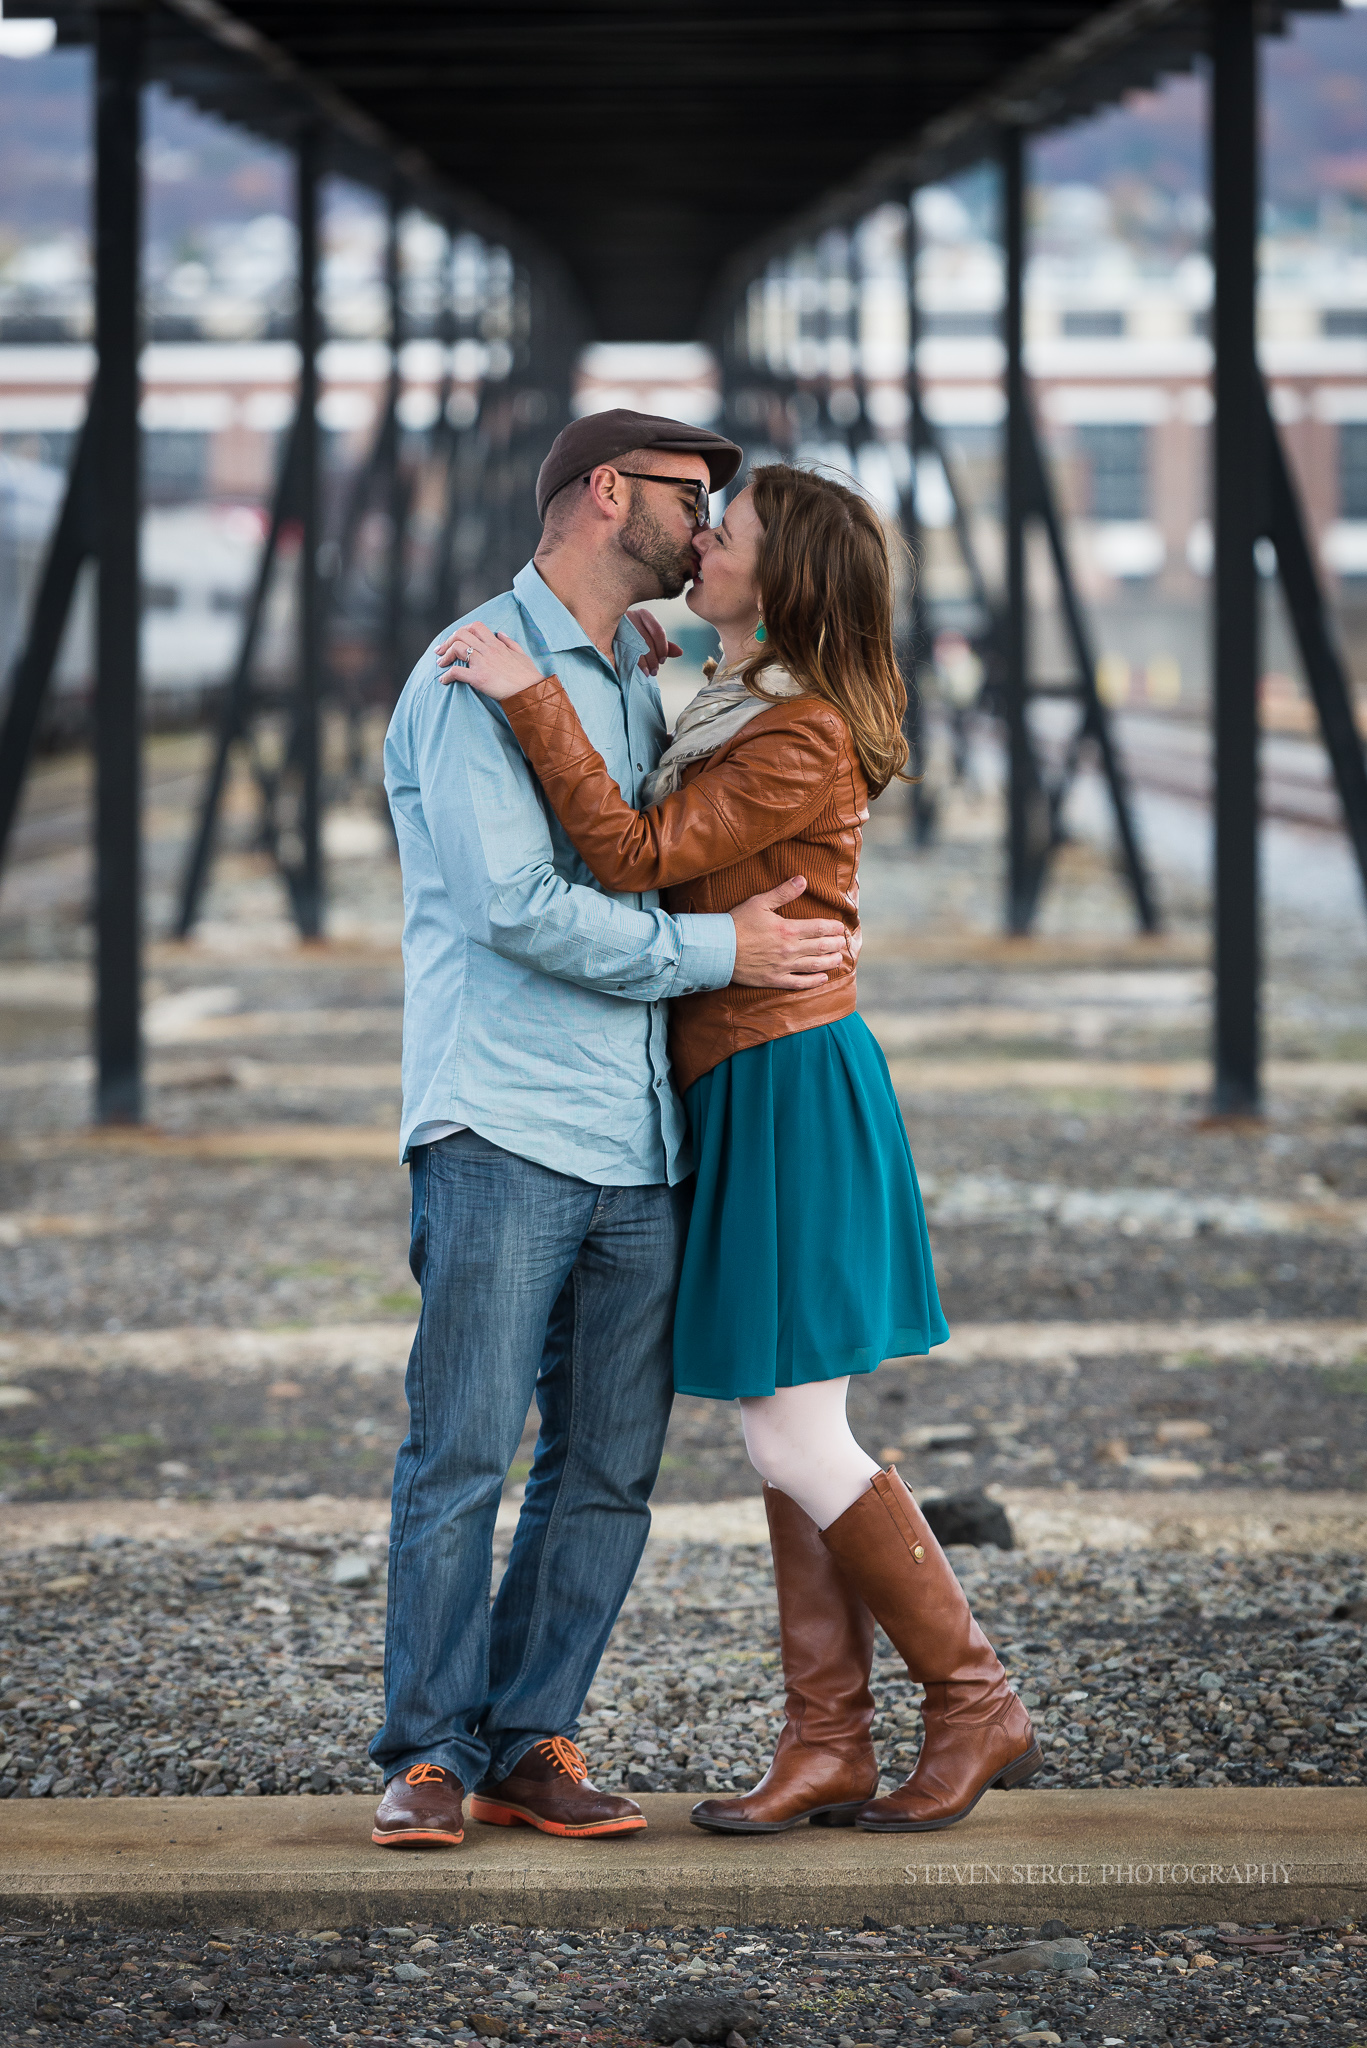 Aleine-Scranton-Engagement-Wedding-Nepa-Photographer-Steamtown-Photography-6.jpg